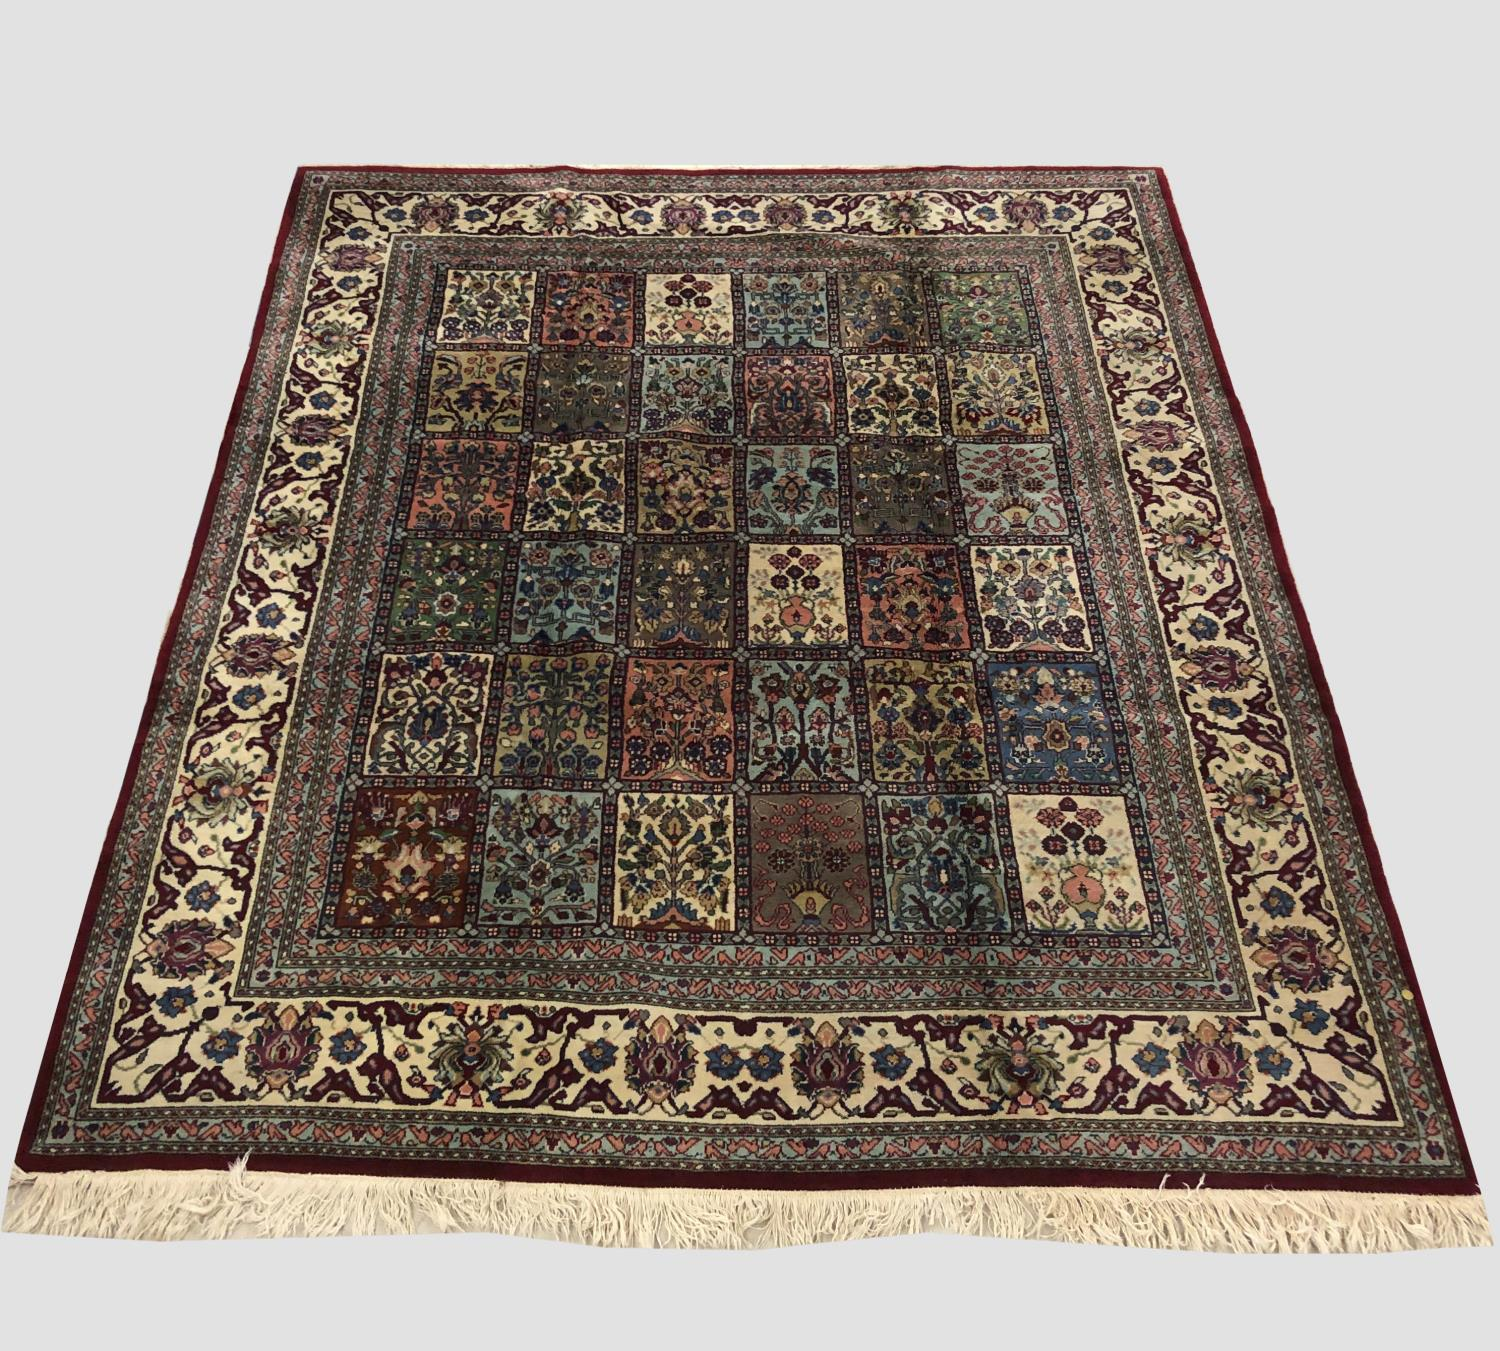 AN INDIAN CARPET, the compartmentalised field of polychrome flowering plants enclosed by ivory